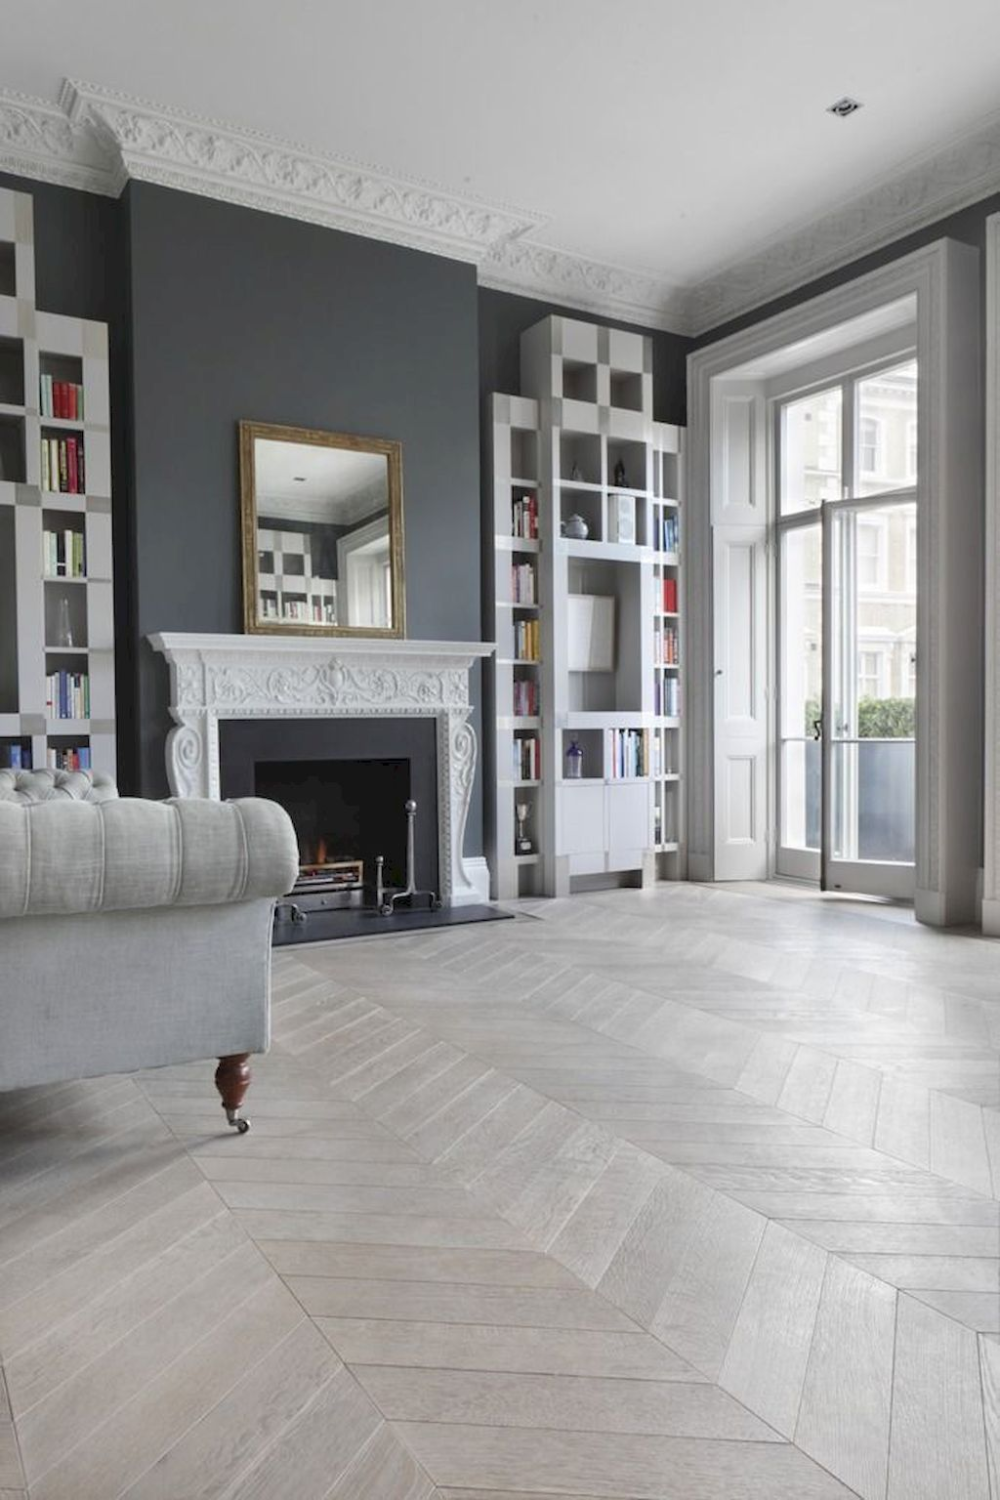 Exceptional Design And How To Beautify Wooden Floors Bodengestaltung Holz Wohnzimmer Wohnzimmer Bodenbelag #stone #flooring #for #living #room